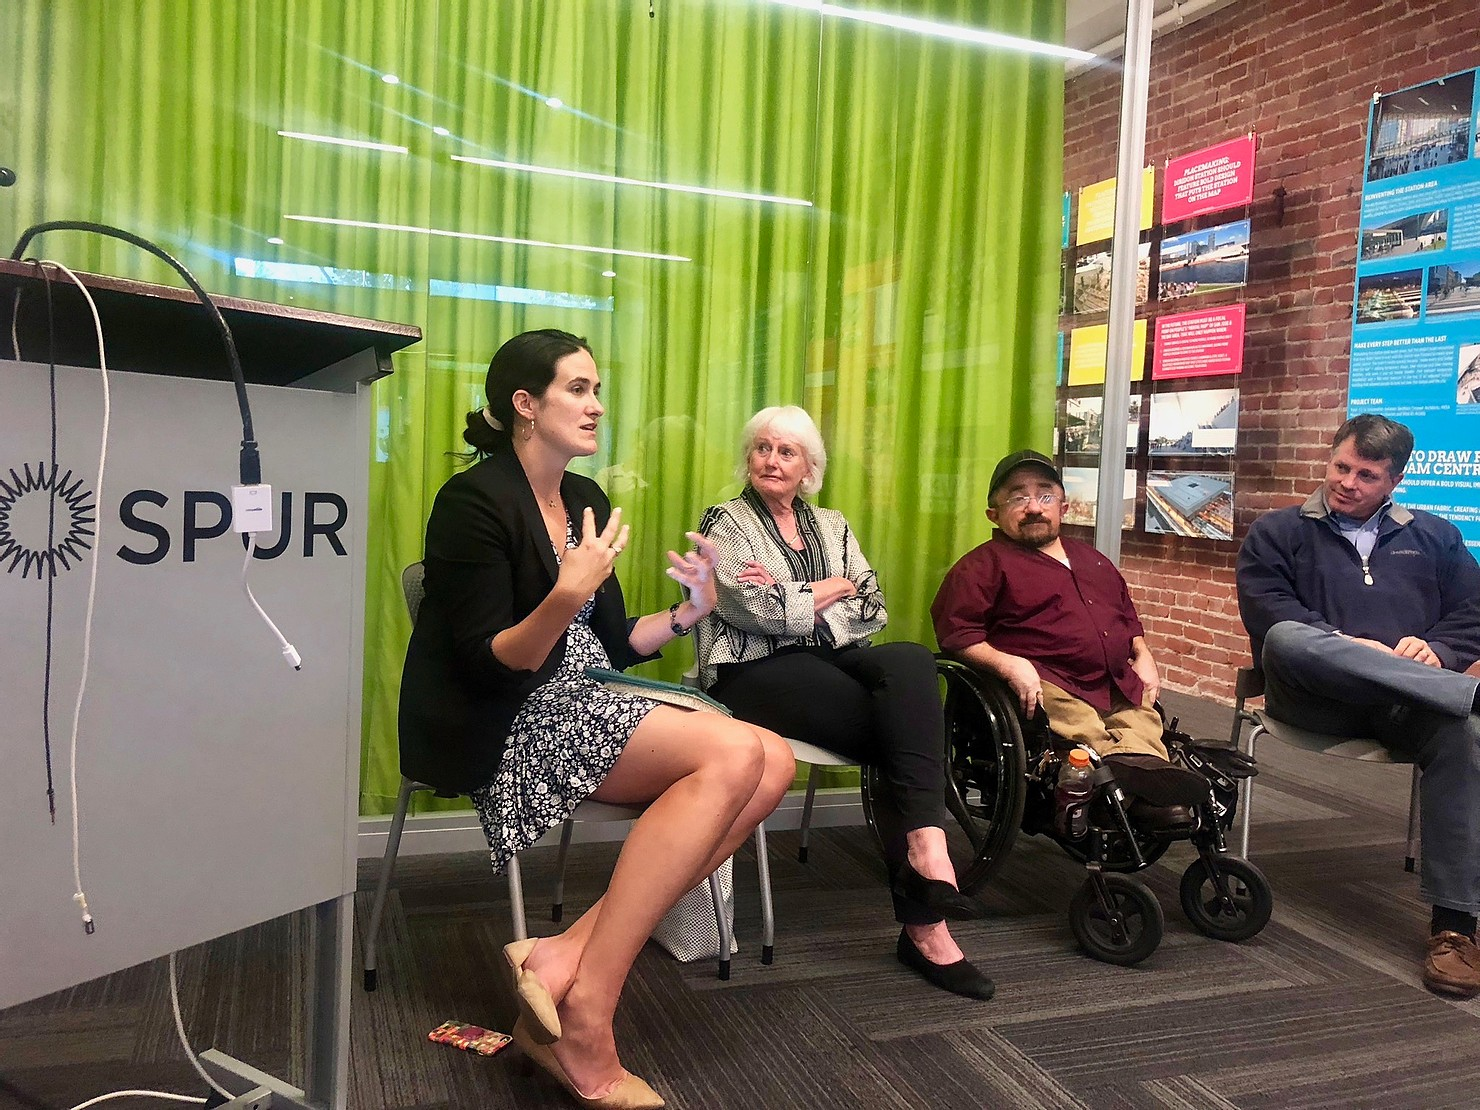 Micaela speaking with panelists for SPUR